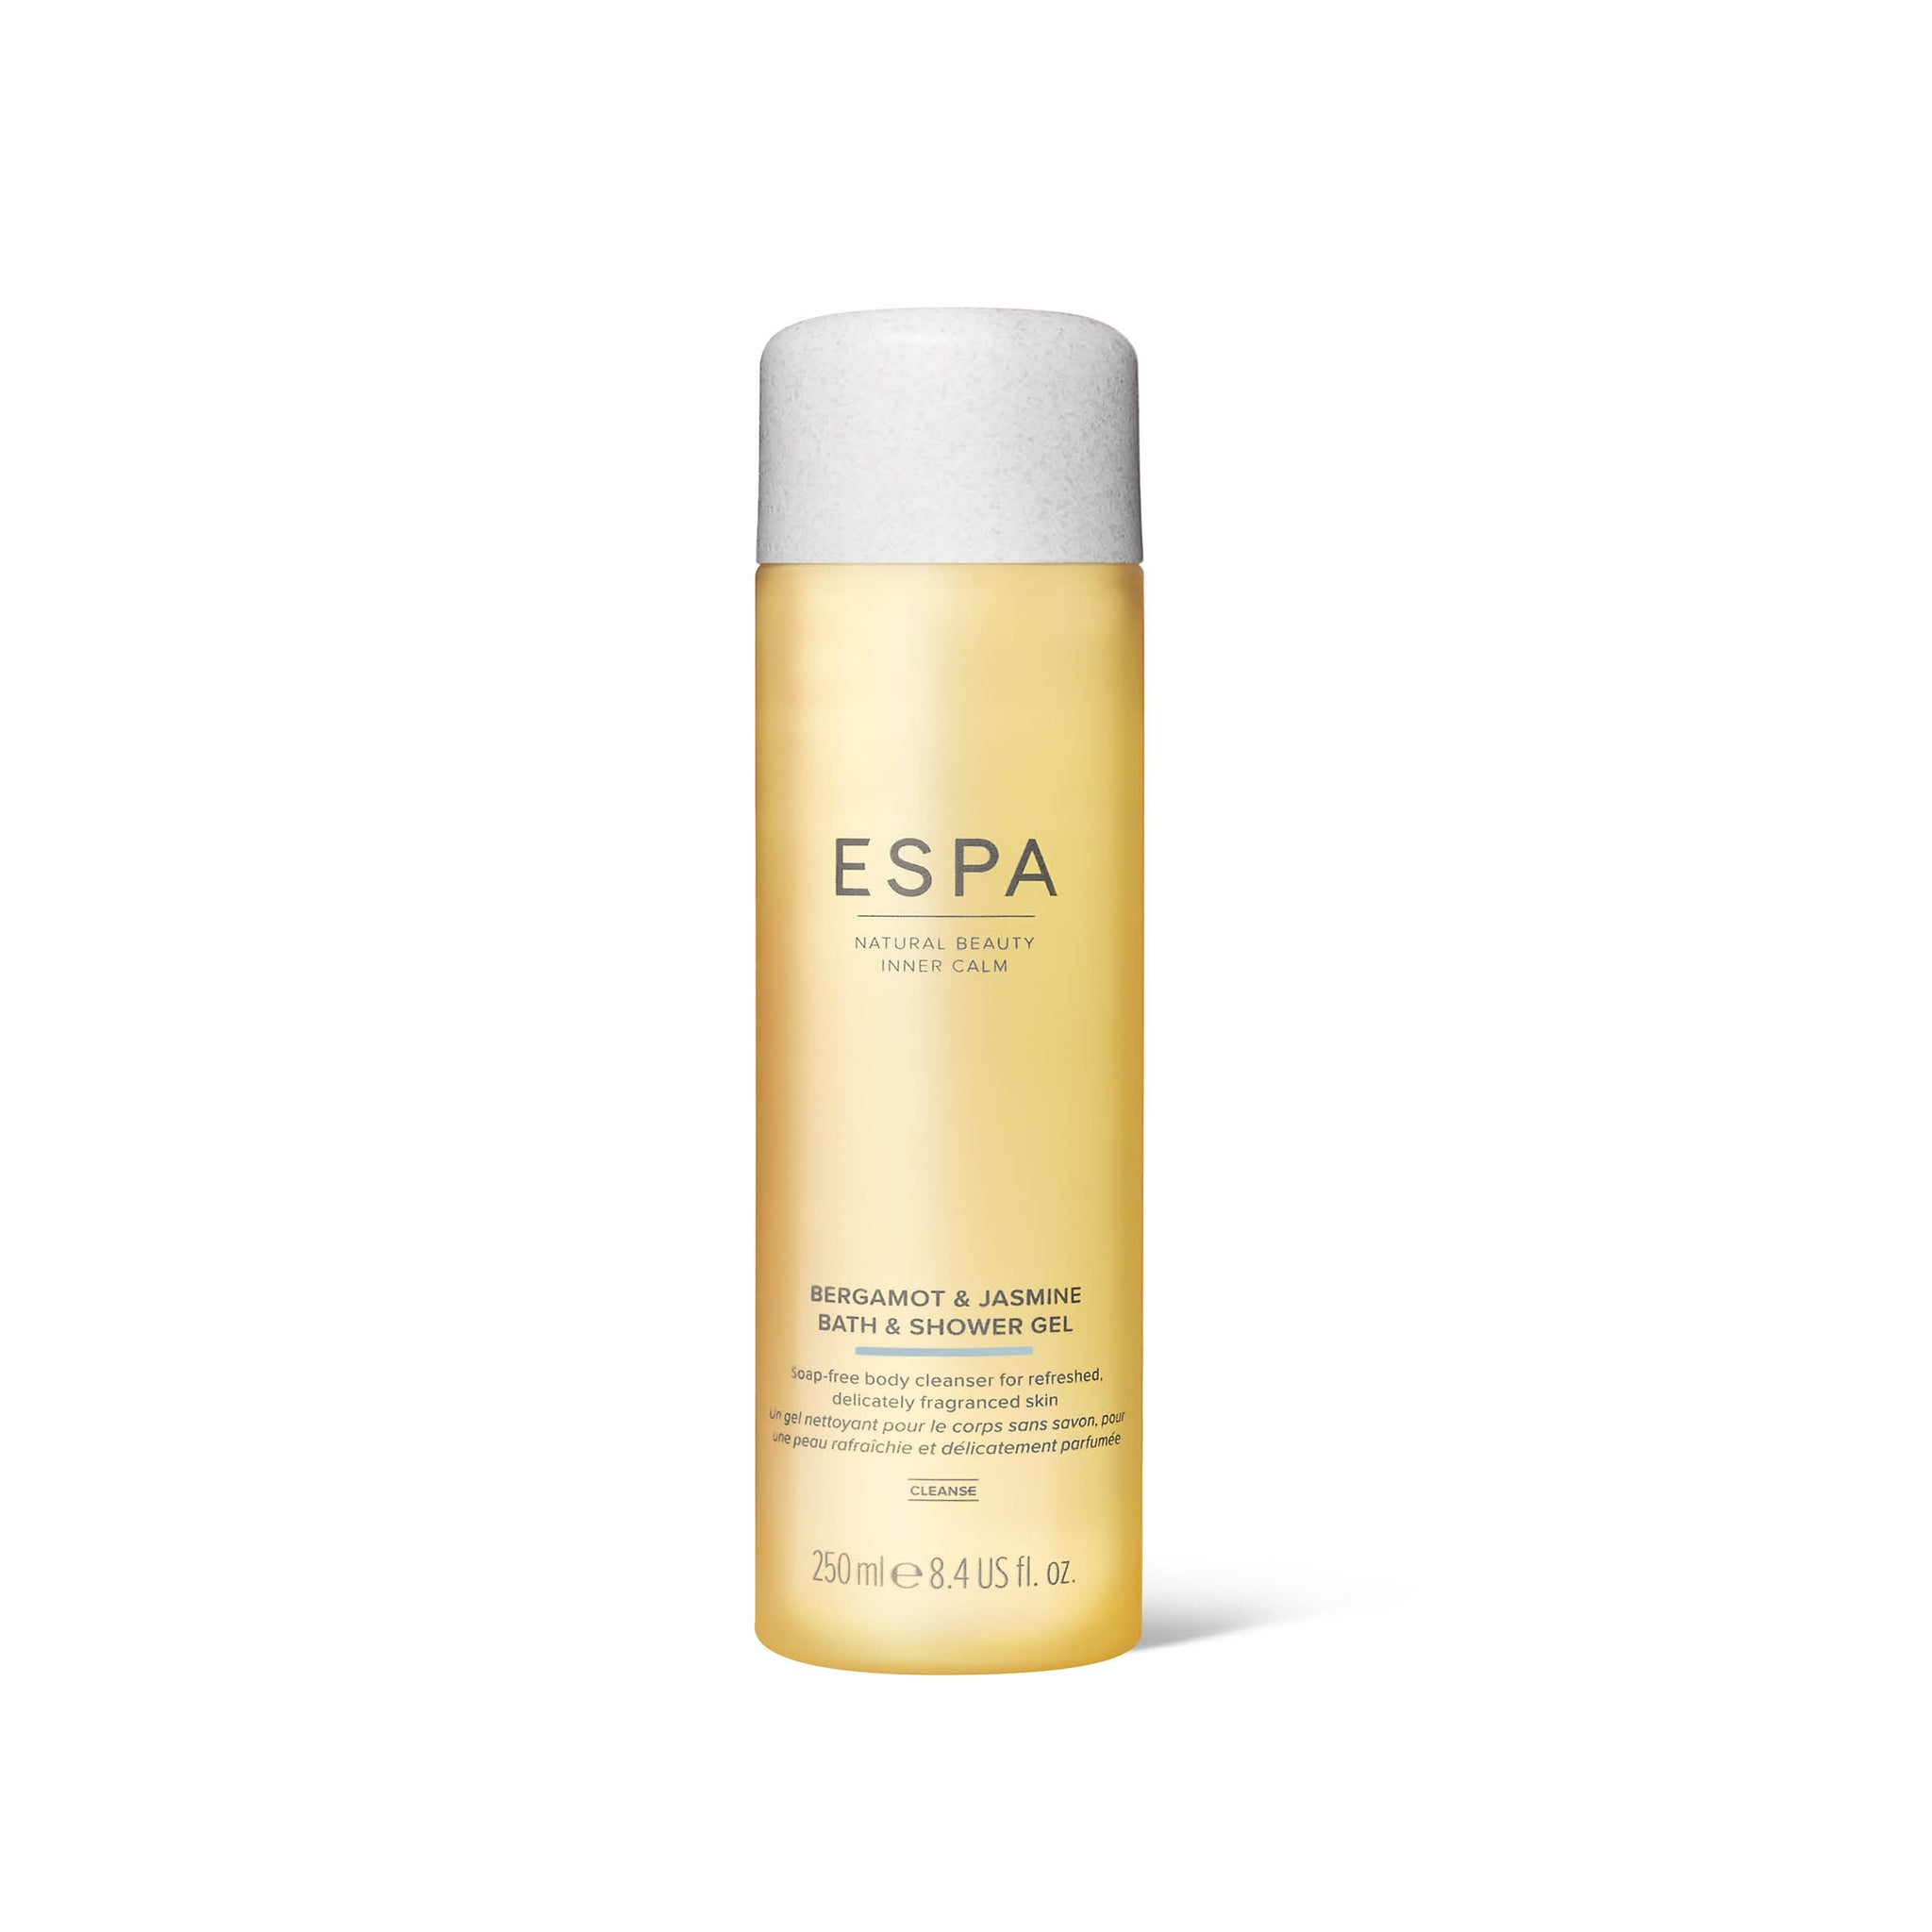 ESPA Bergamot & Jasmine Bath and Shower Gel